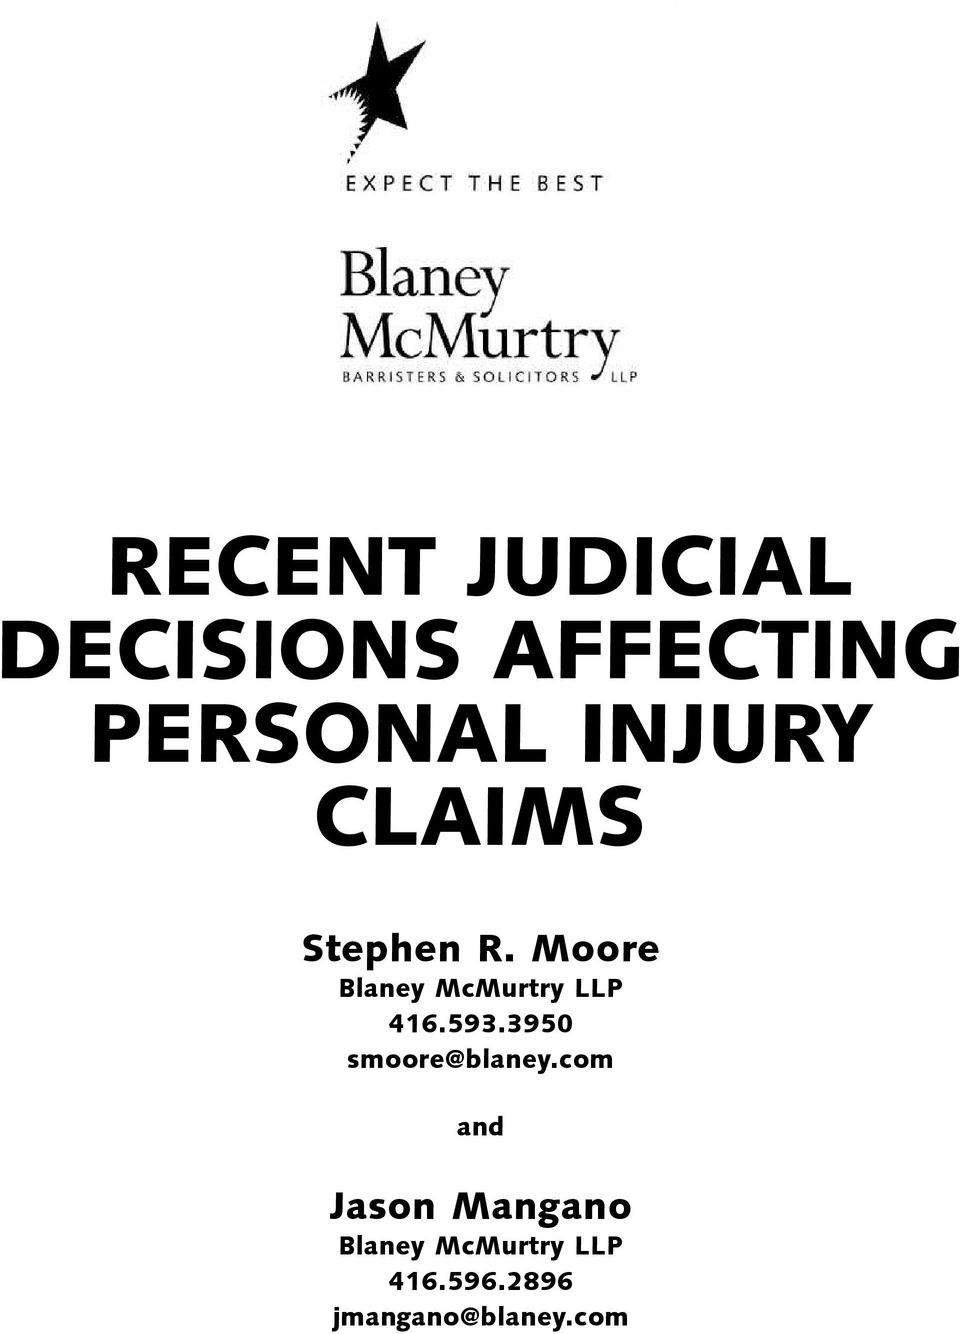 Moore Blaney McMurtry LLP 416.593.